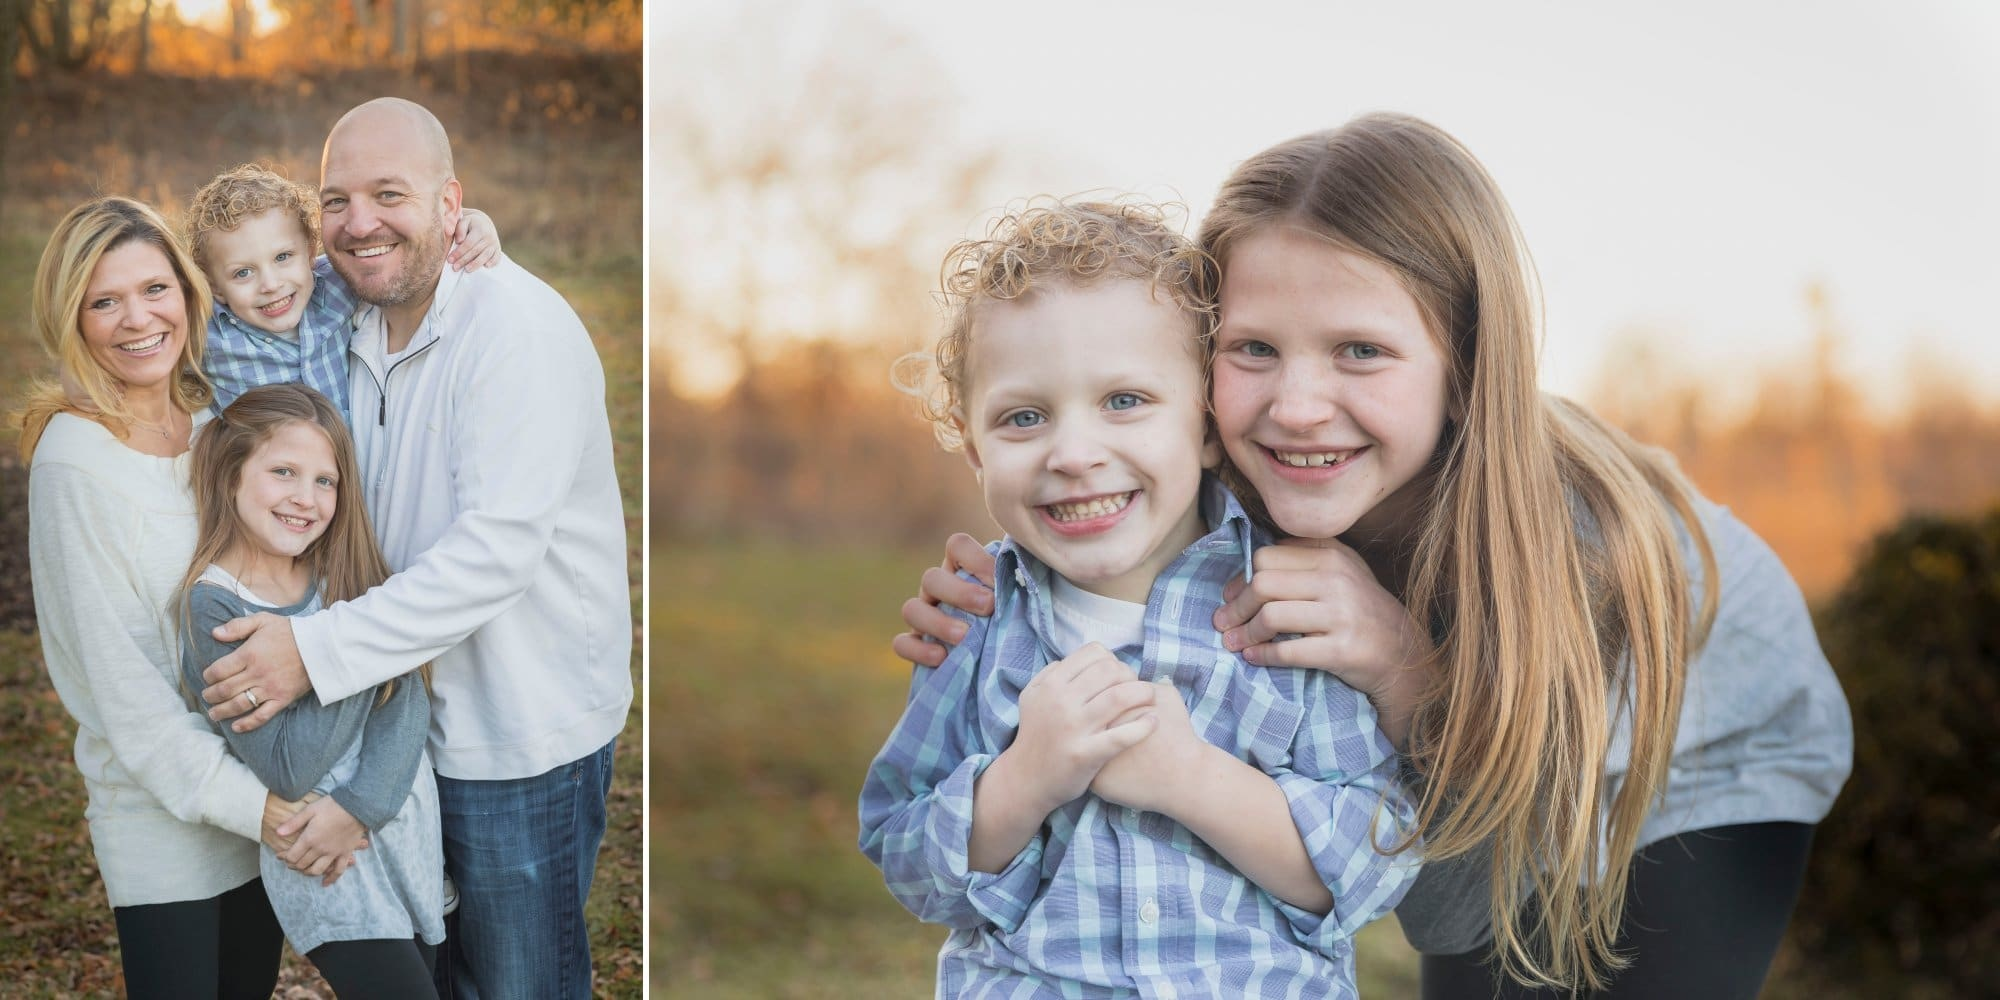 Mayslake Family pictures with young kids